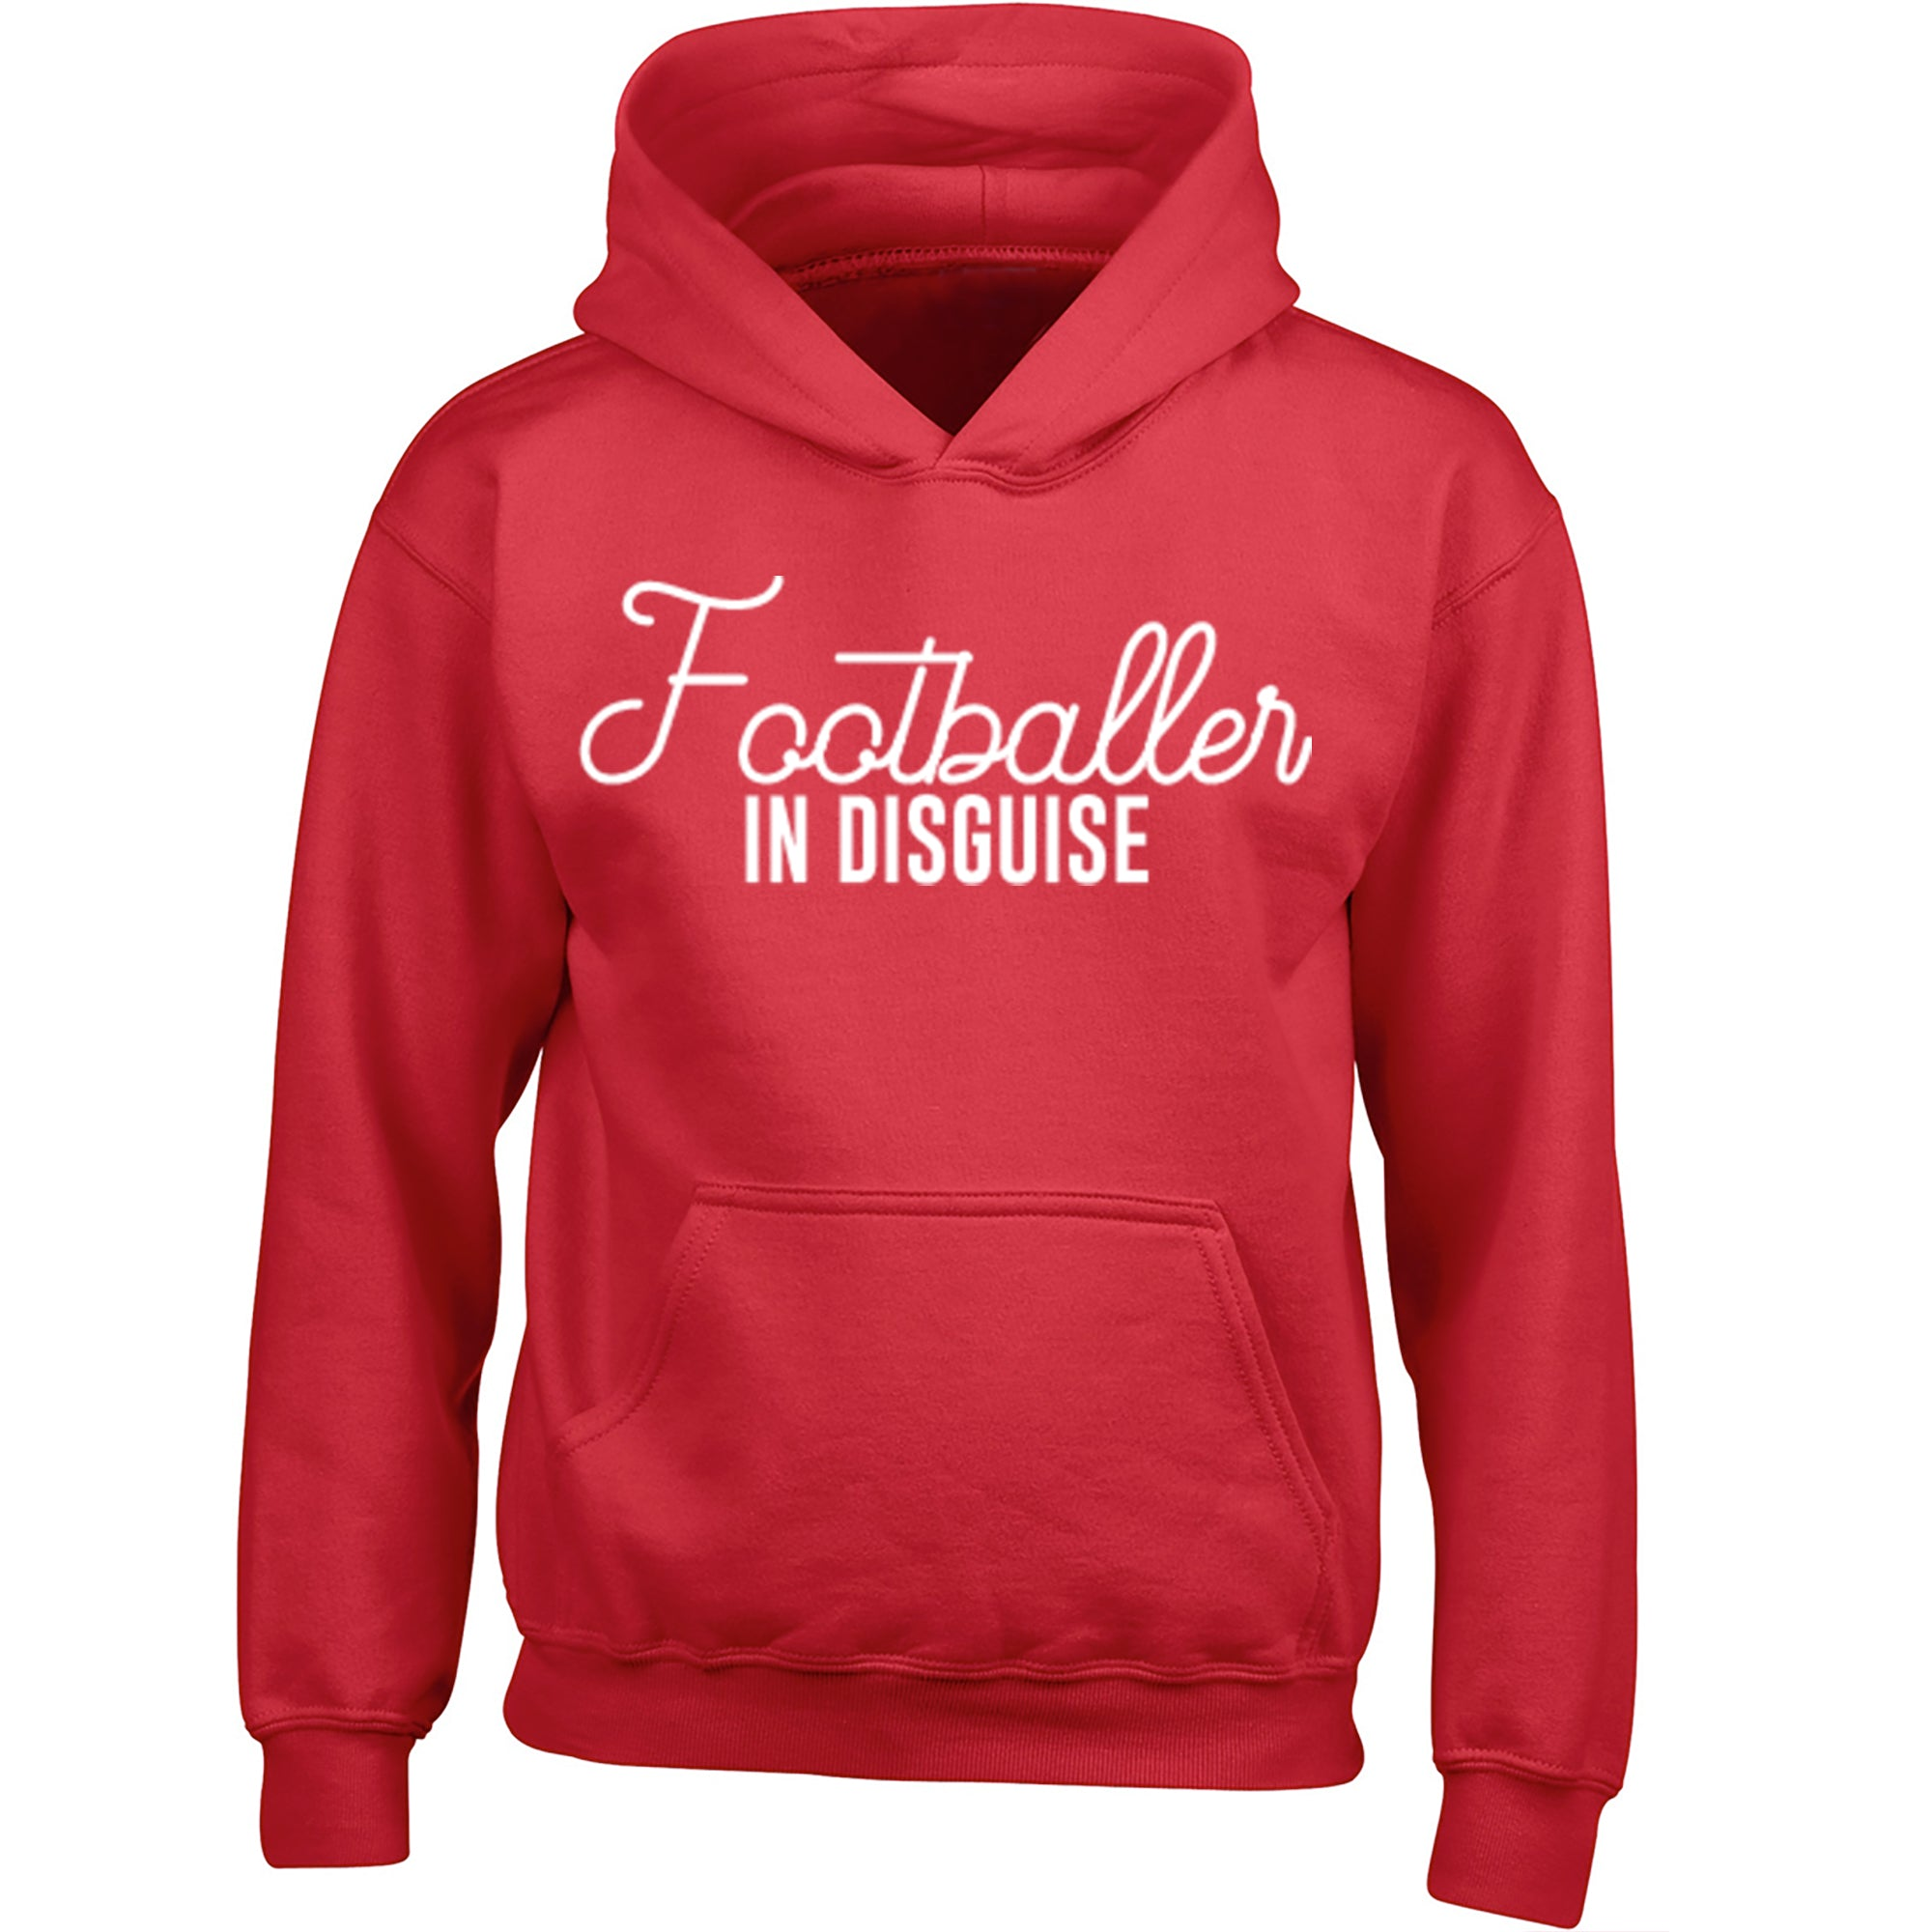 Footballer In Disguise Childrens Ages 3/4-12/14 Unisex Hoodie S0054 - Illustrated Identity Ltd.